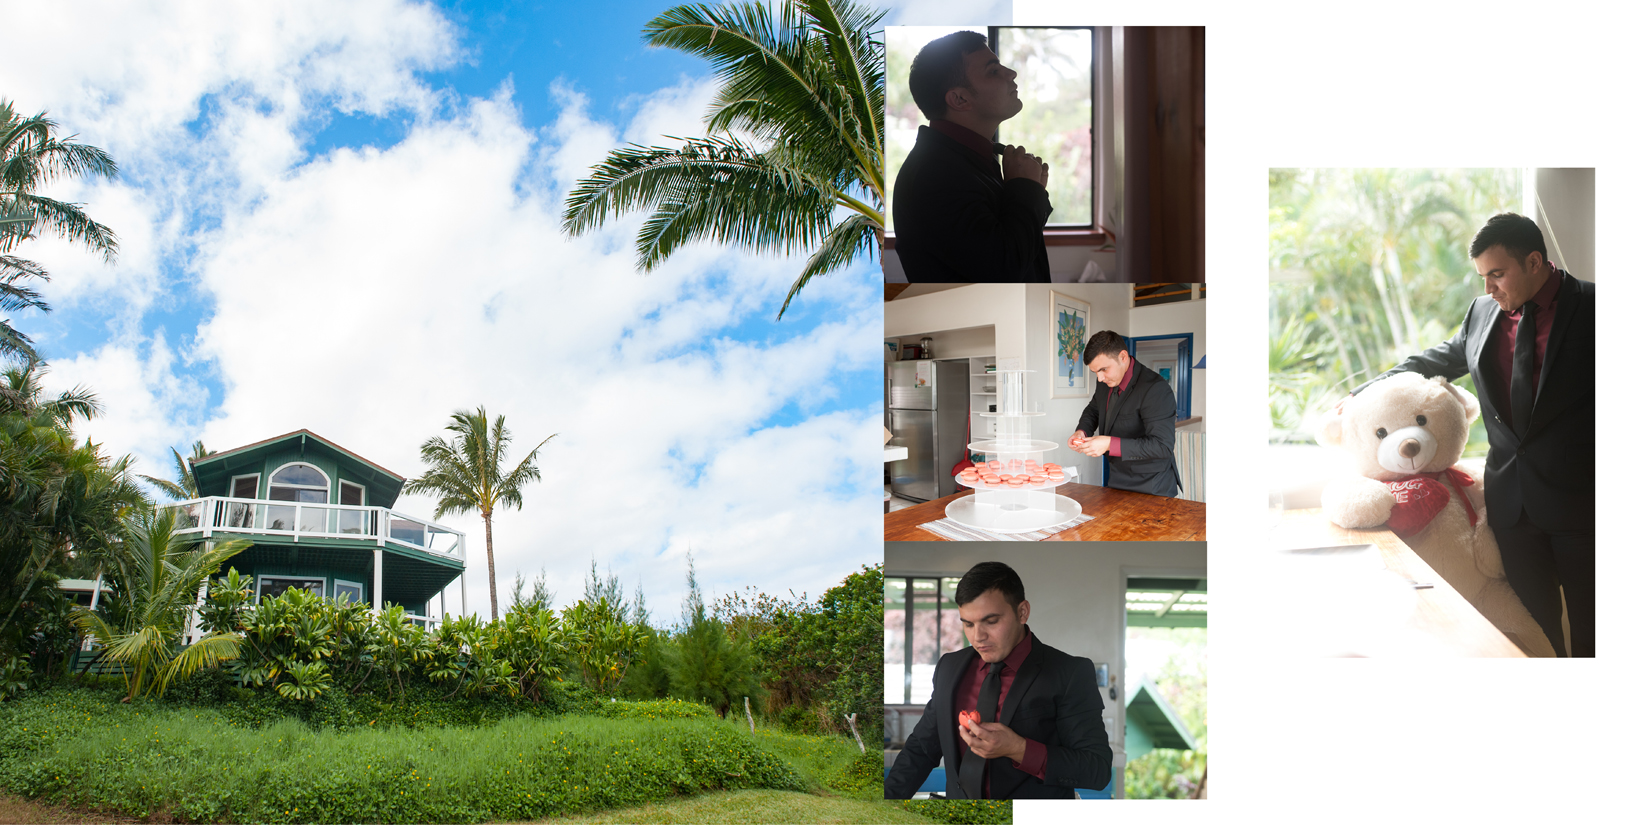 Sample Album Design of Maui Wedding Photography at Panoramic Tropical Setting in Haiku